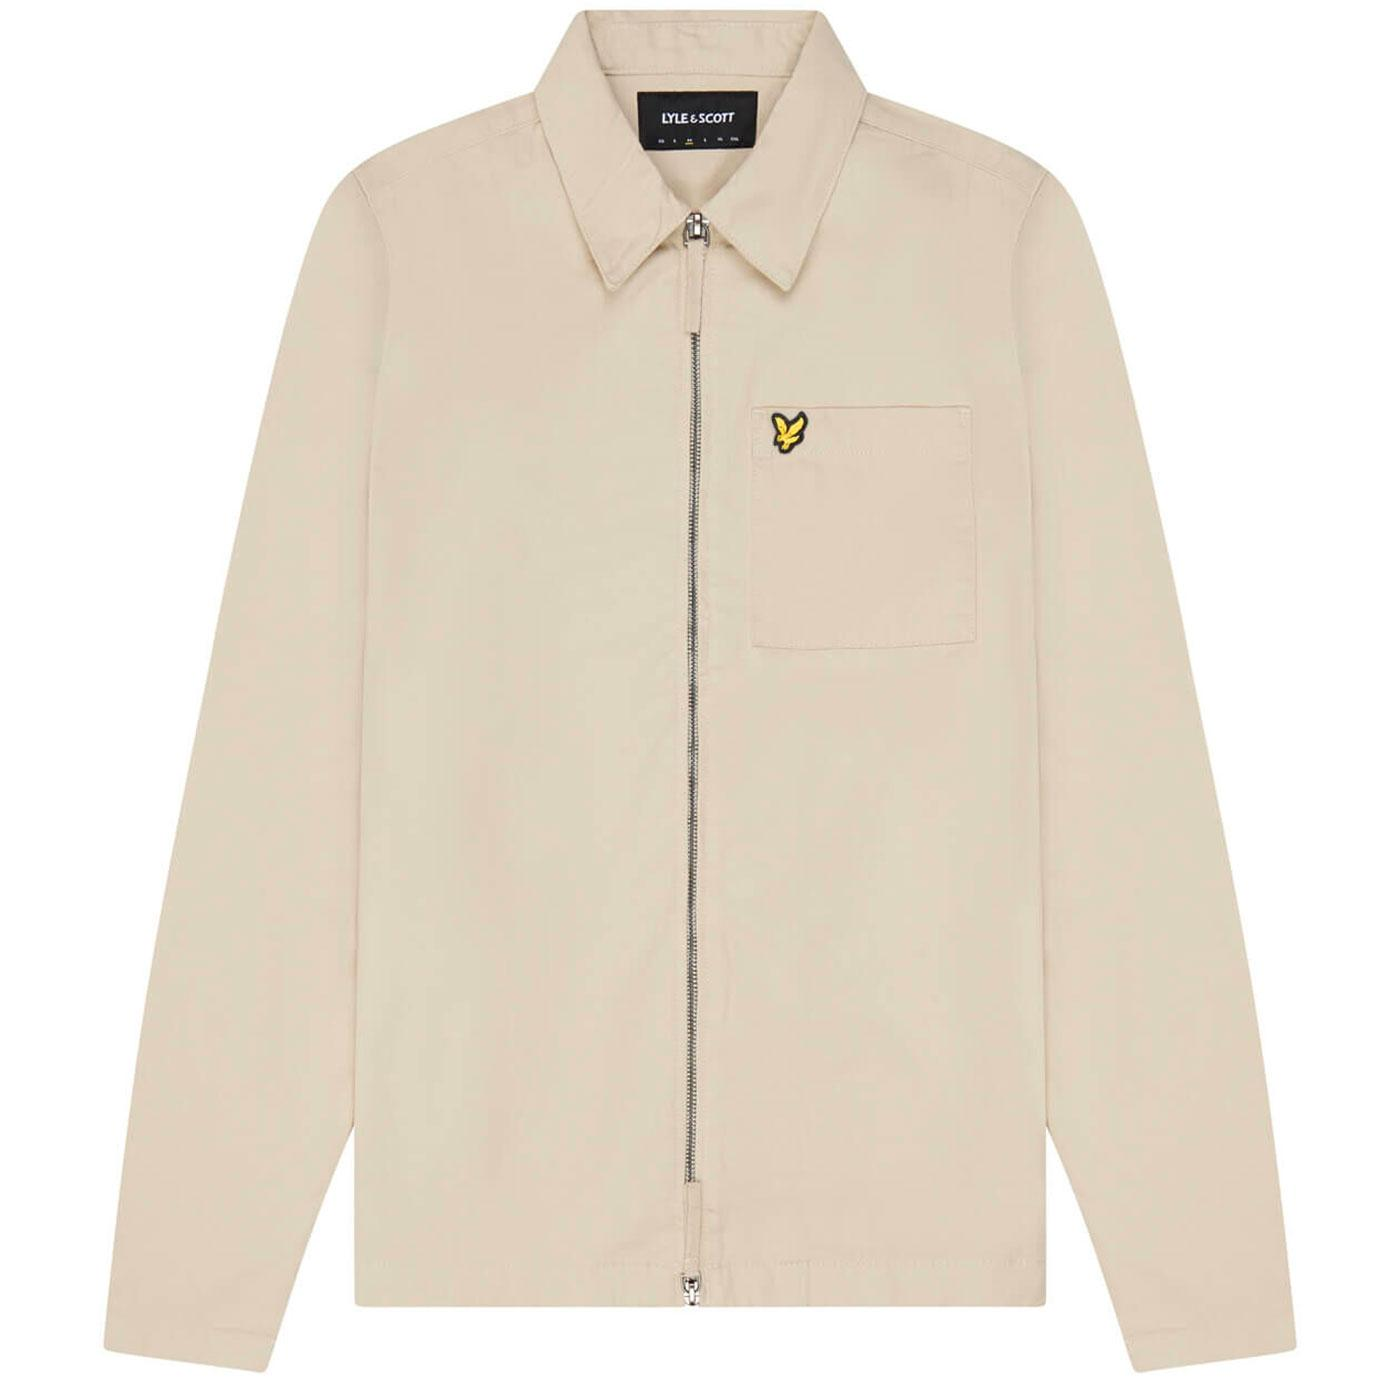 LYLE & SCOTT Retro Mod Zip Through Twill Overshirt